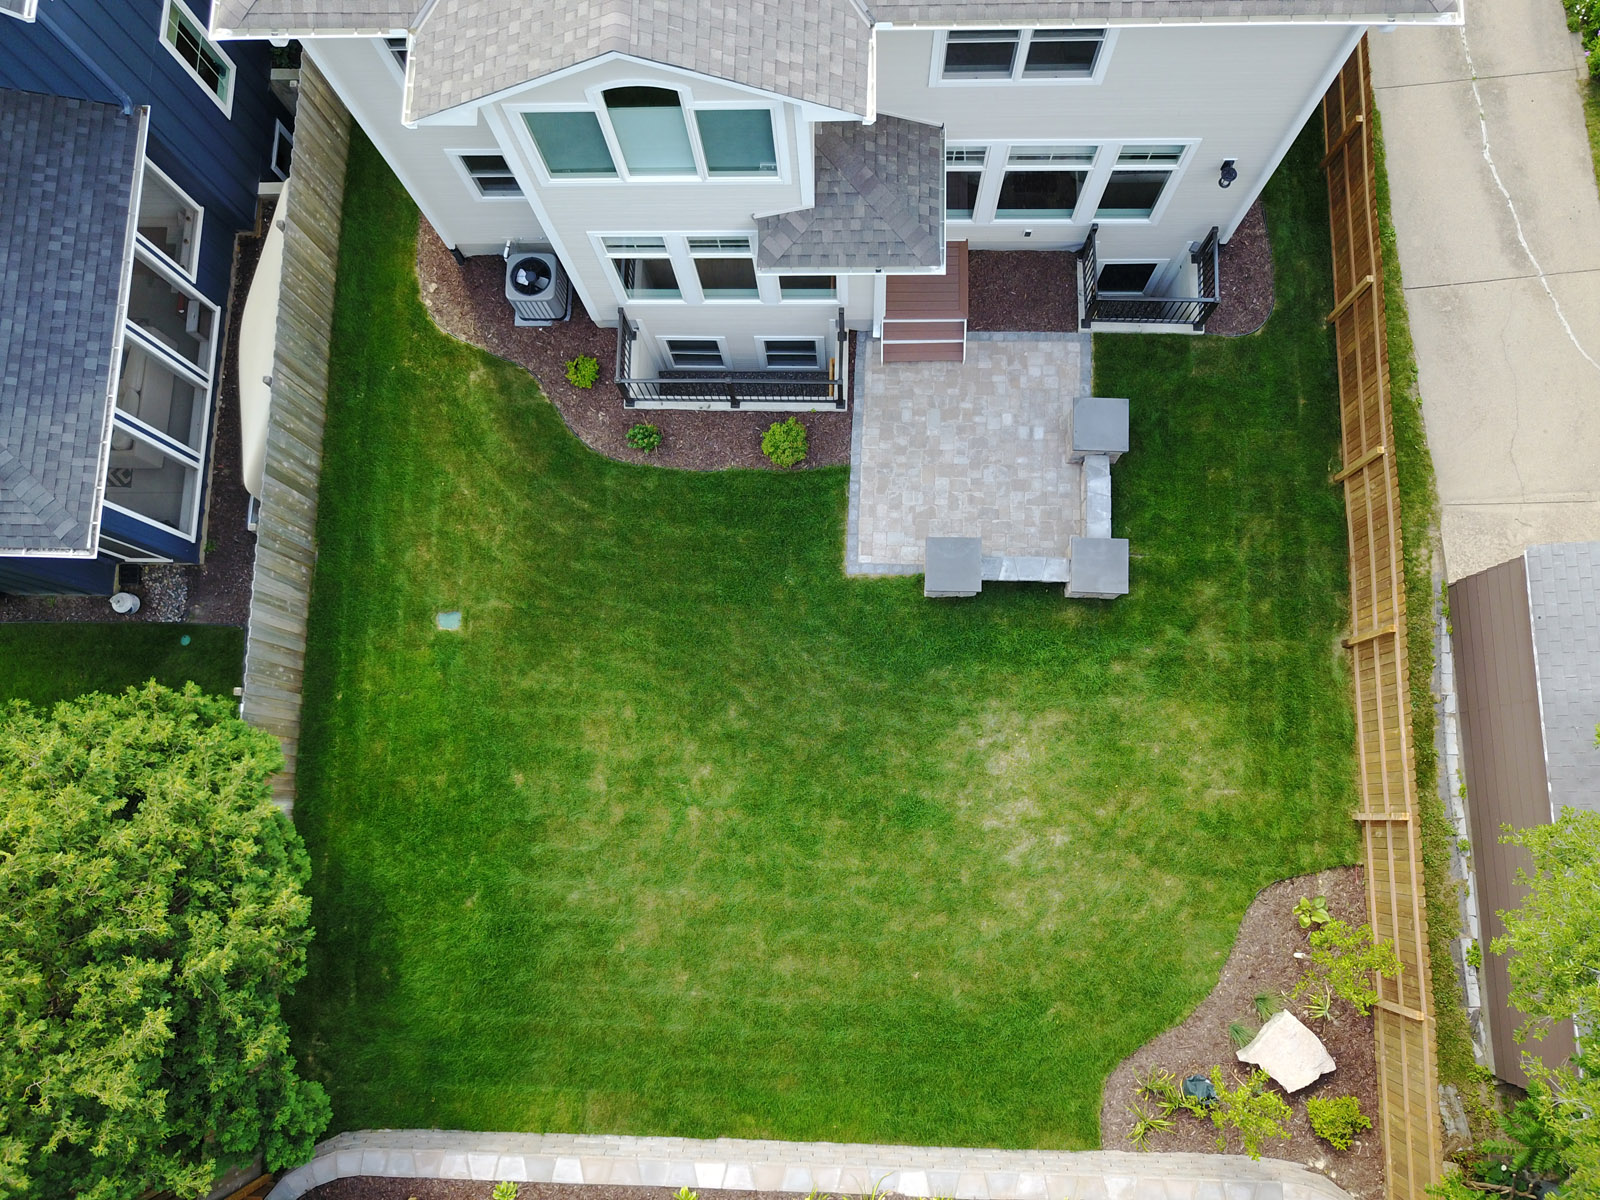 Overhead Aerial View of Backyard